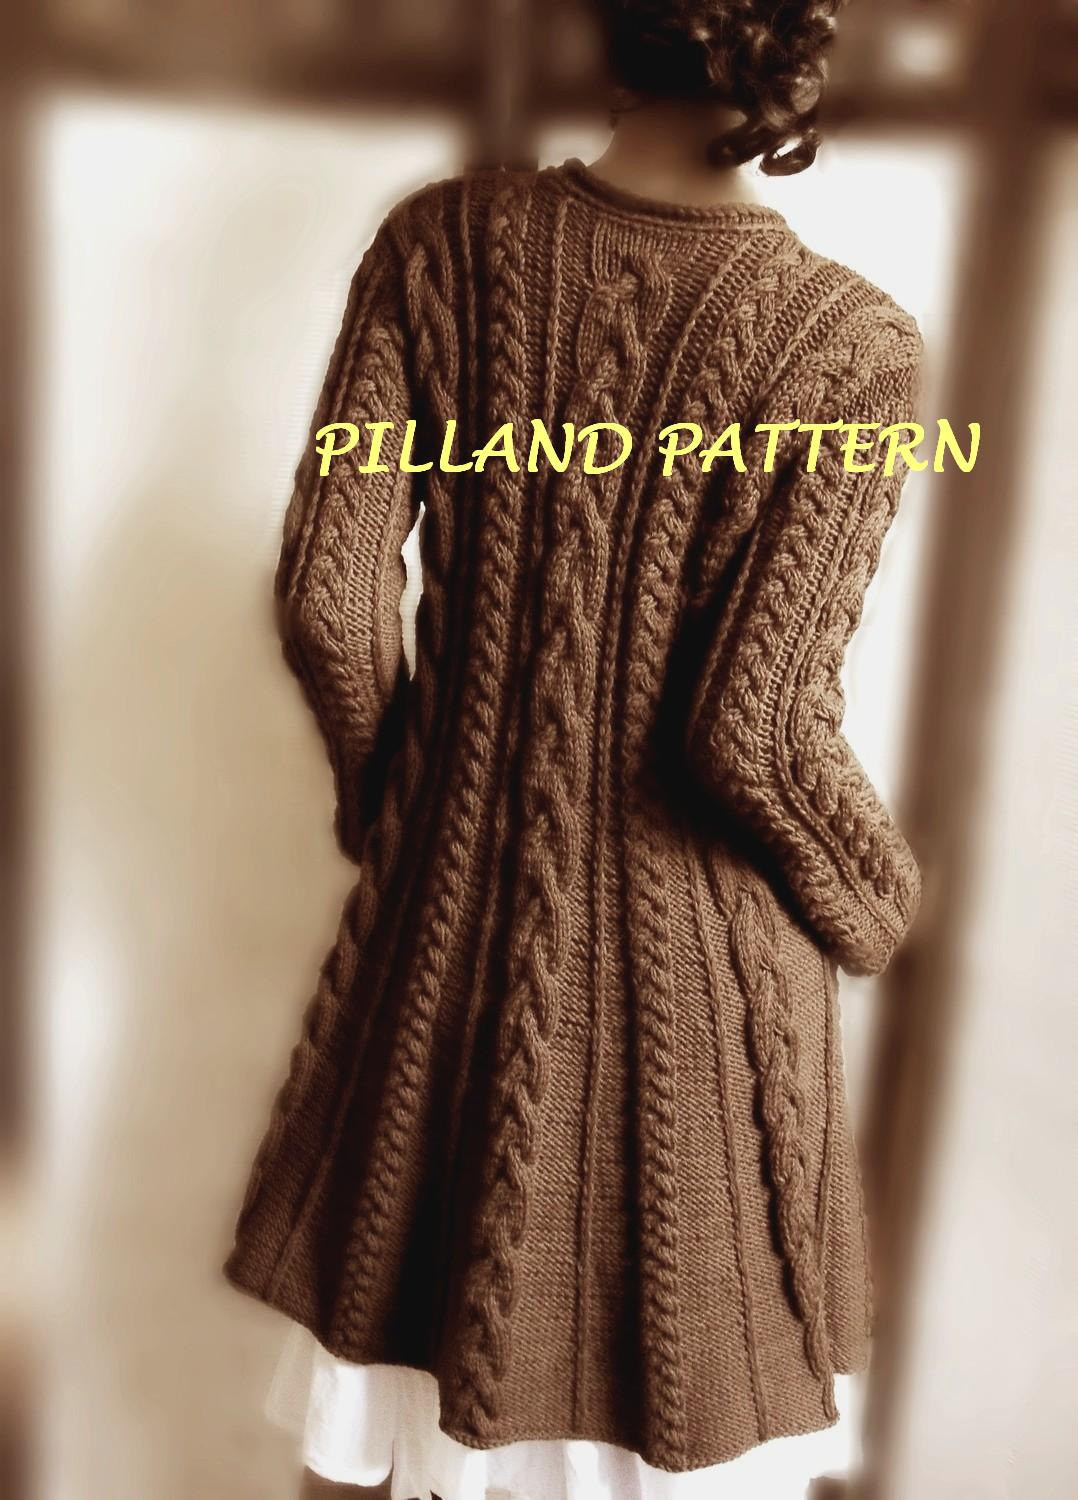 Luxury Sweater Coat Knitting Pattern Pdf Cable Knit A Line Coat Cable Knit Sweater Pattern Of Luxury Sweater Coat Knitting Pattern Pdf Cable Knit A Line Coat Cable Knit Sweater Pattern